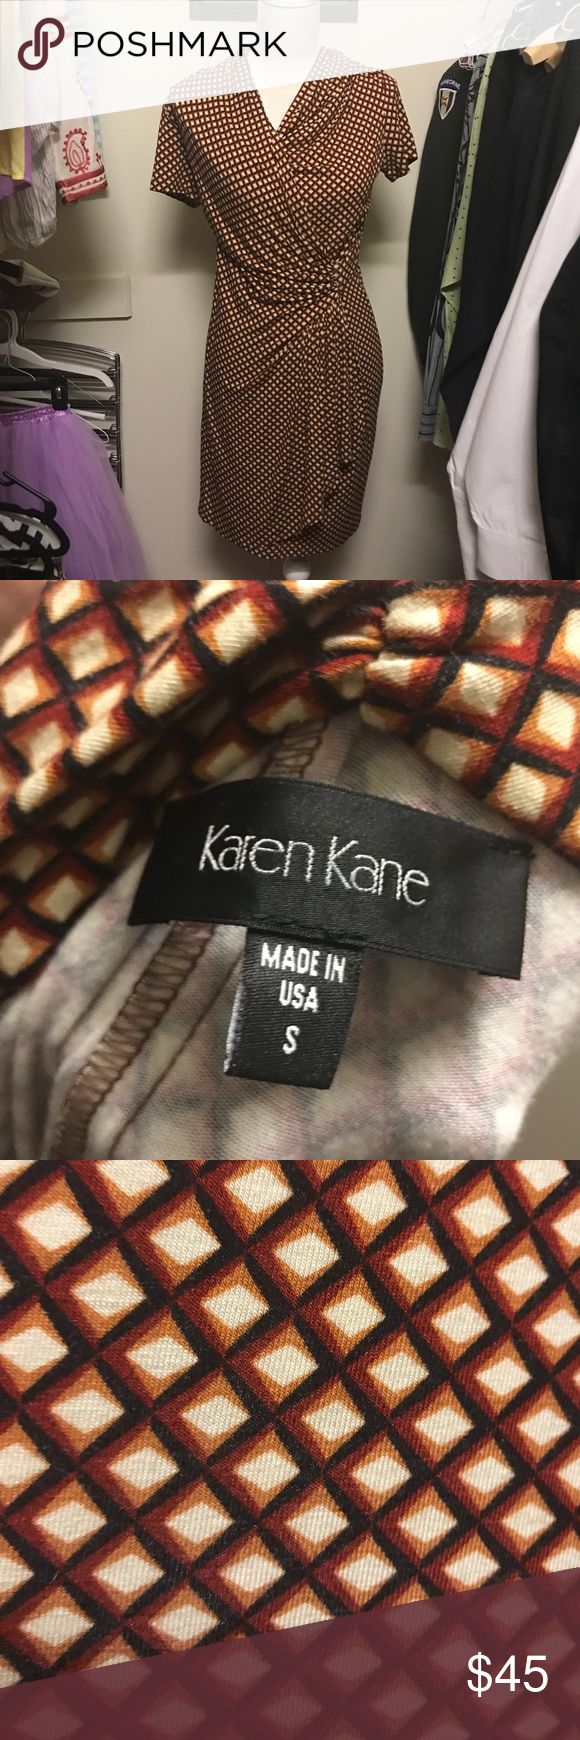 Karen Kane asymmetrical wrap dress size small Karen Kane asymmetrical wrap dress size small. Gorgeous print as shown in photos. Great Fall look. Very stretchy! I'm a size 6 and it fits me well. Karen Kane Dresses